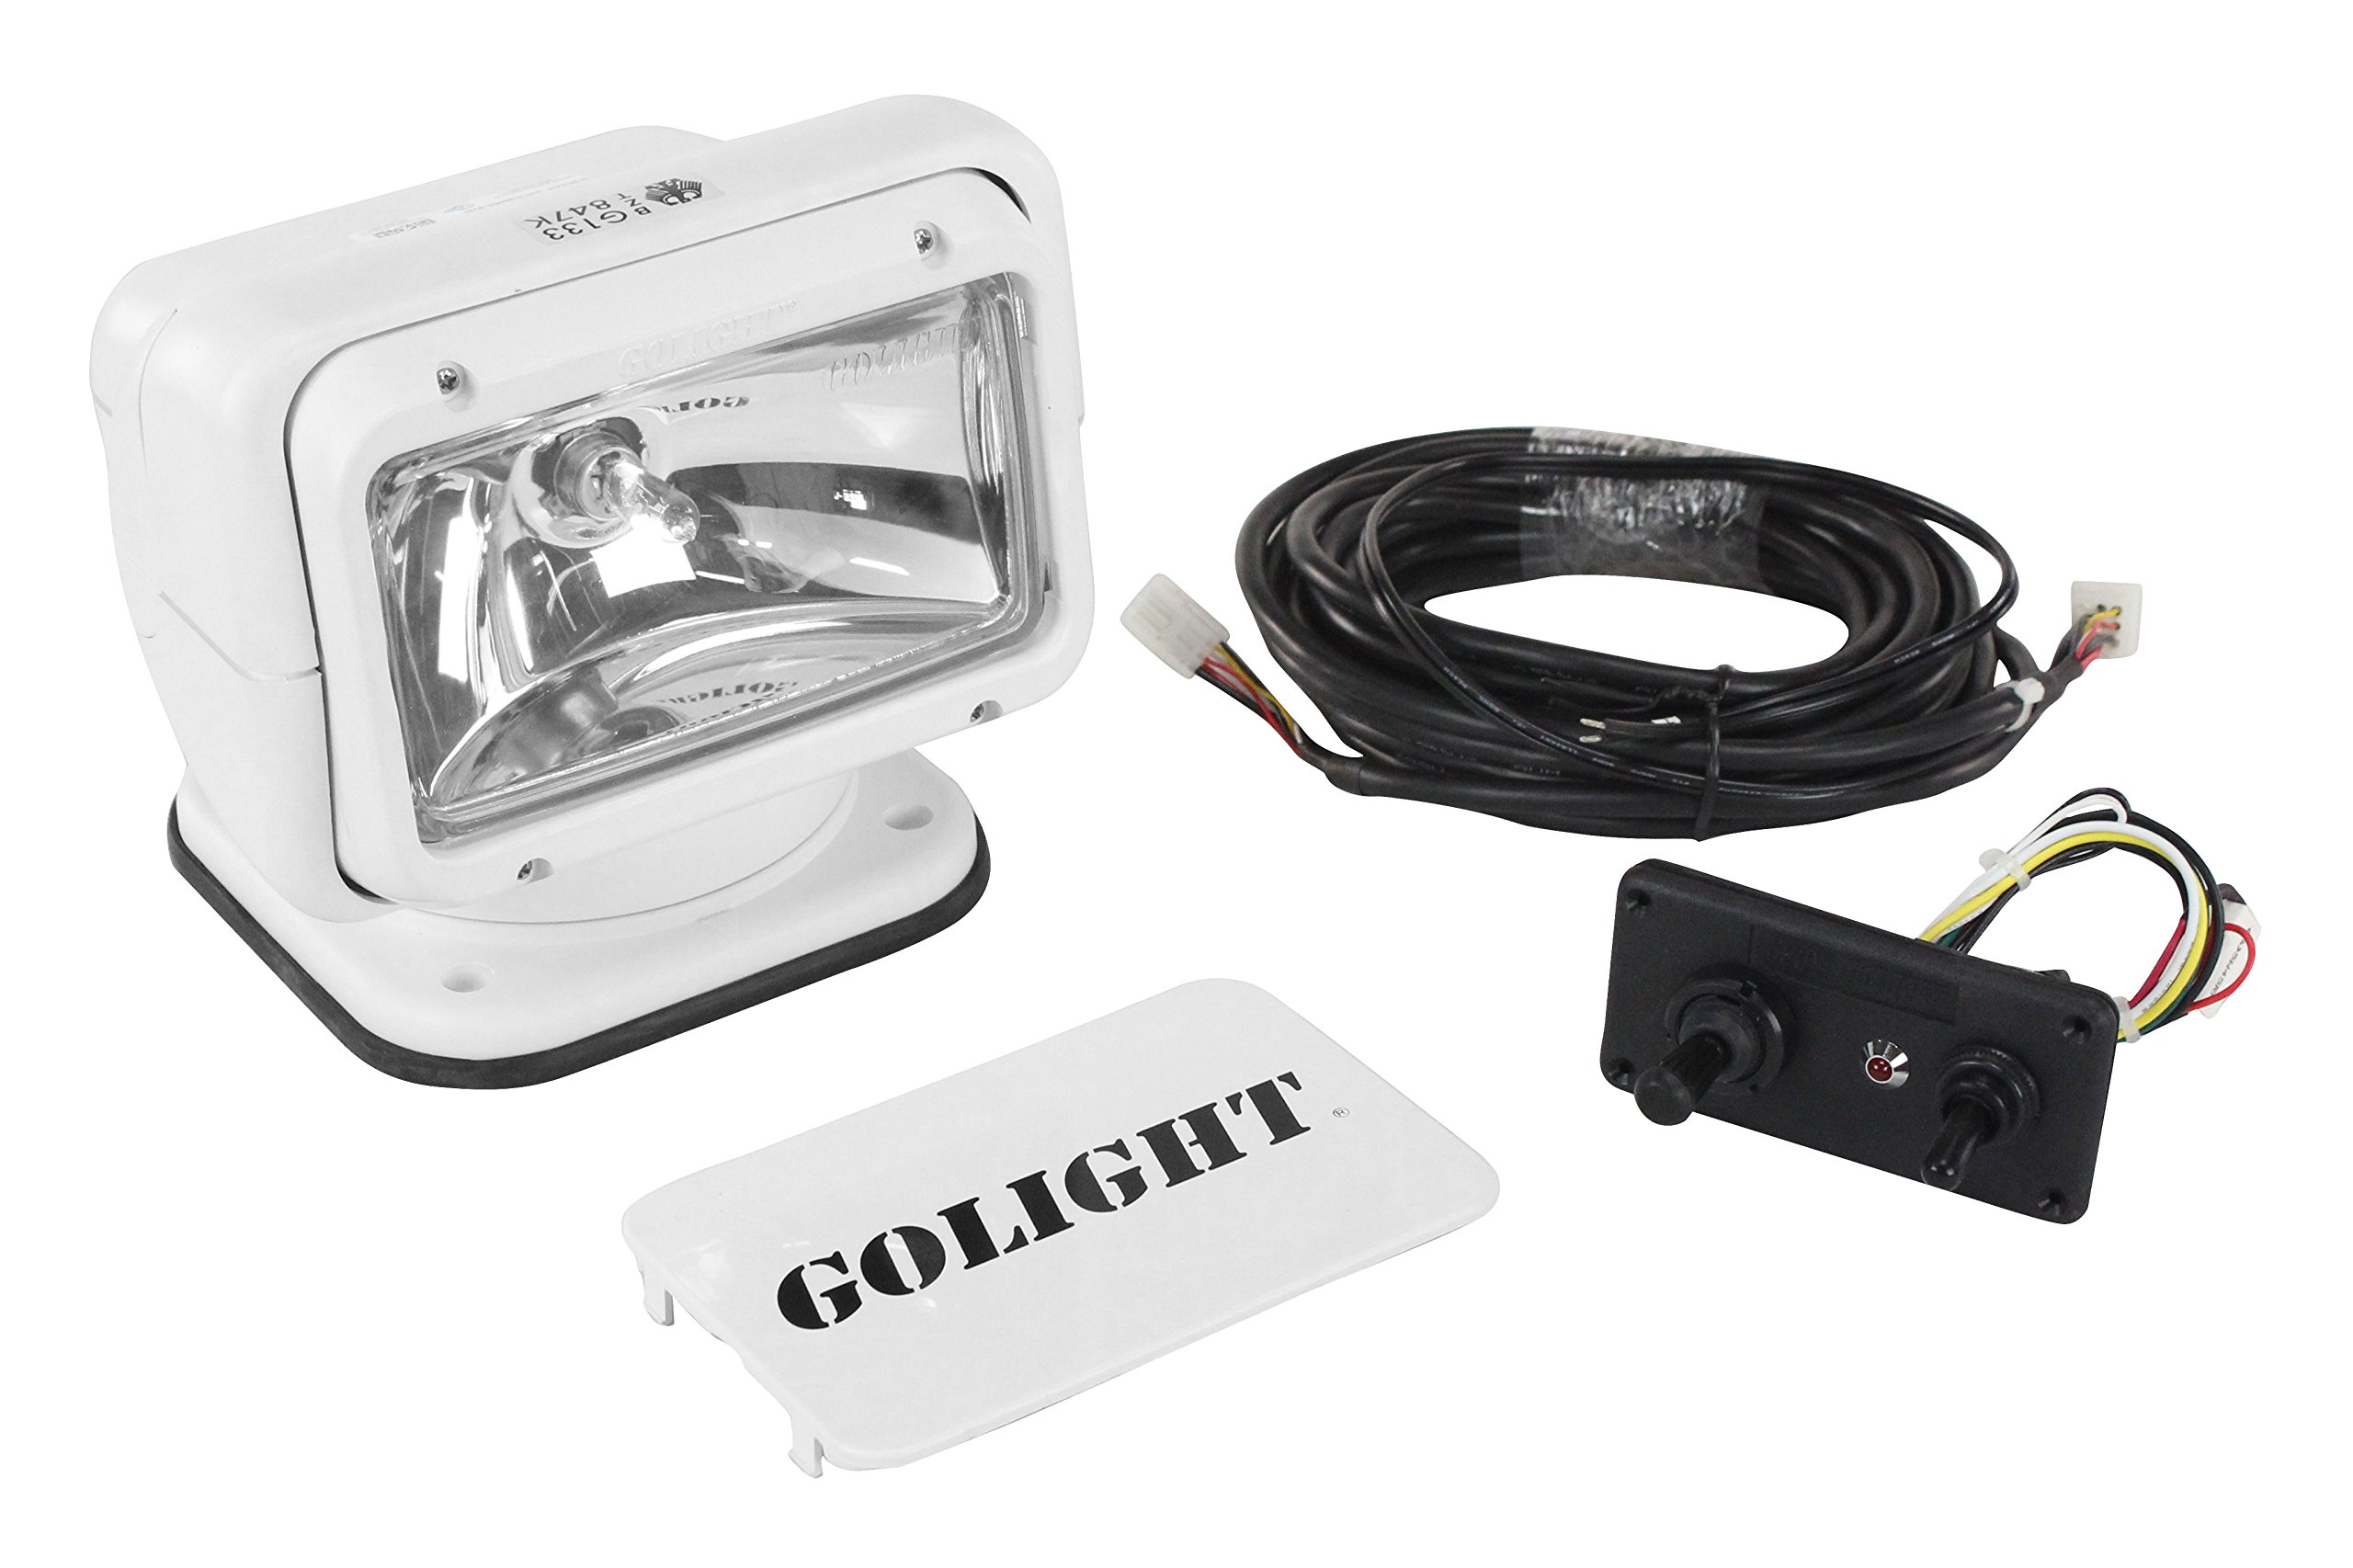 Golight Radioray GL-2020 remote control spotlight - permanent mount by Larson Electronics